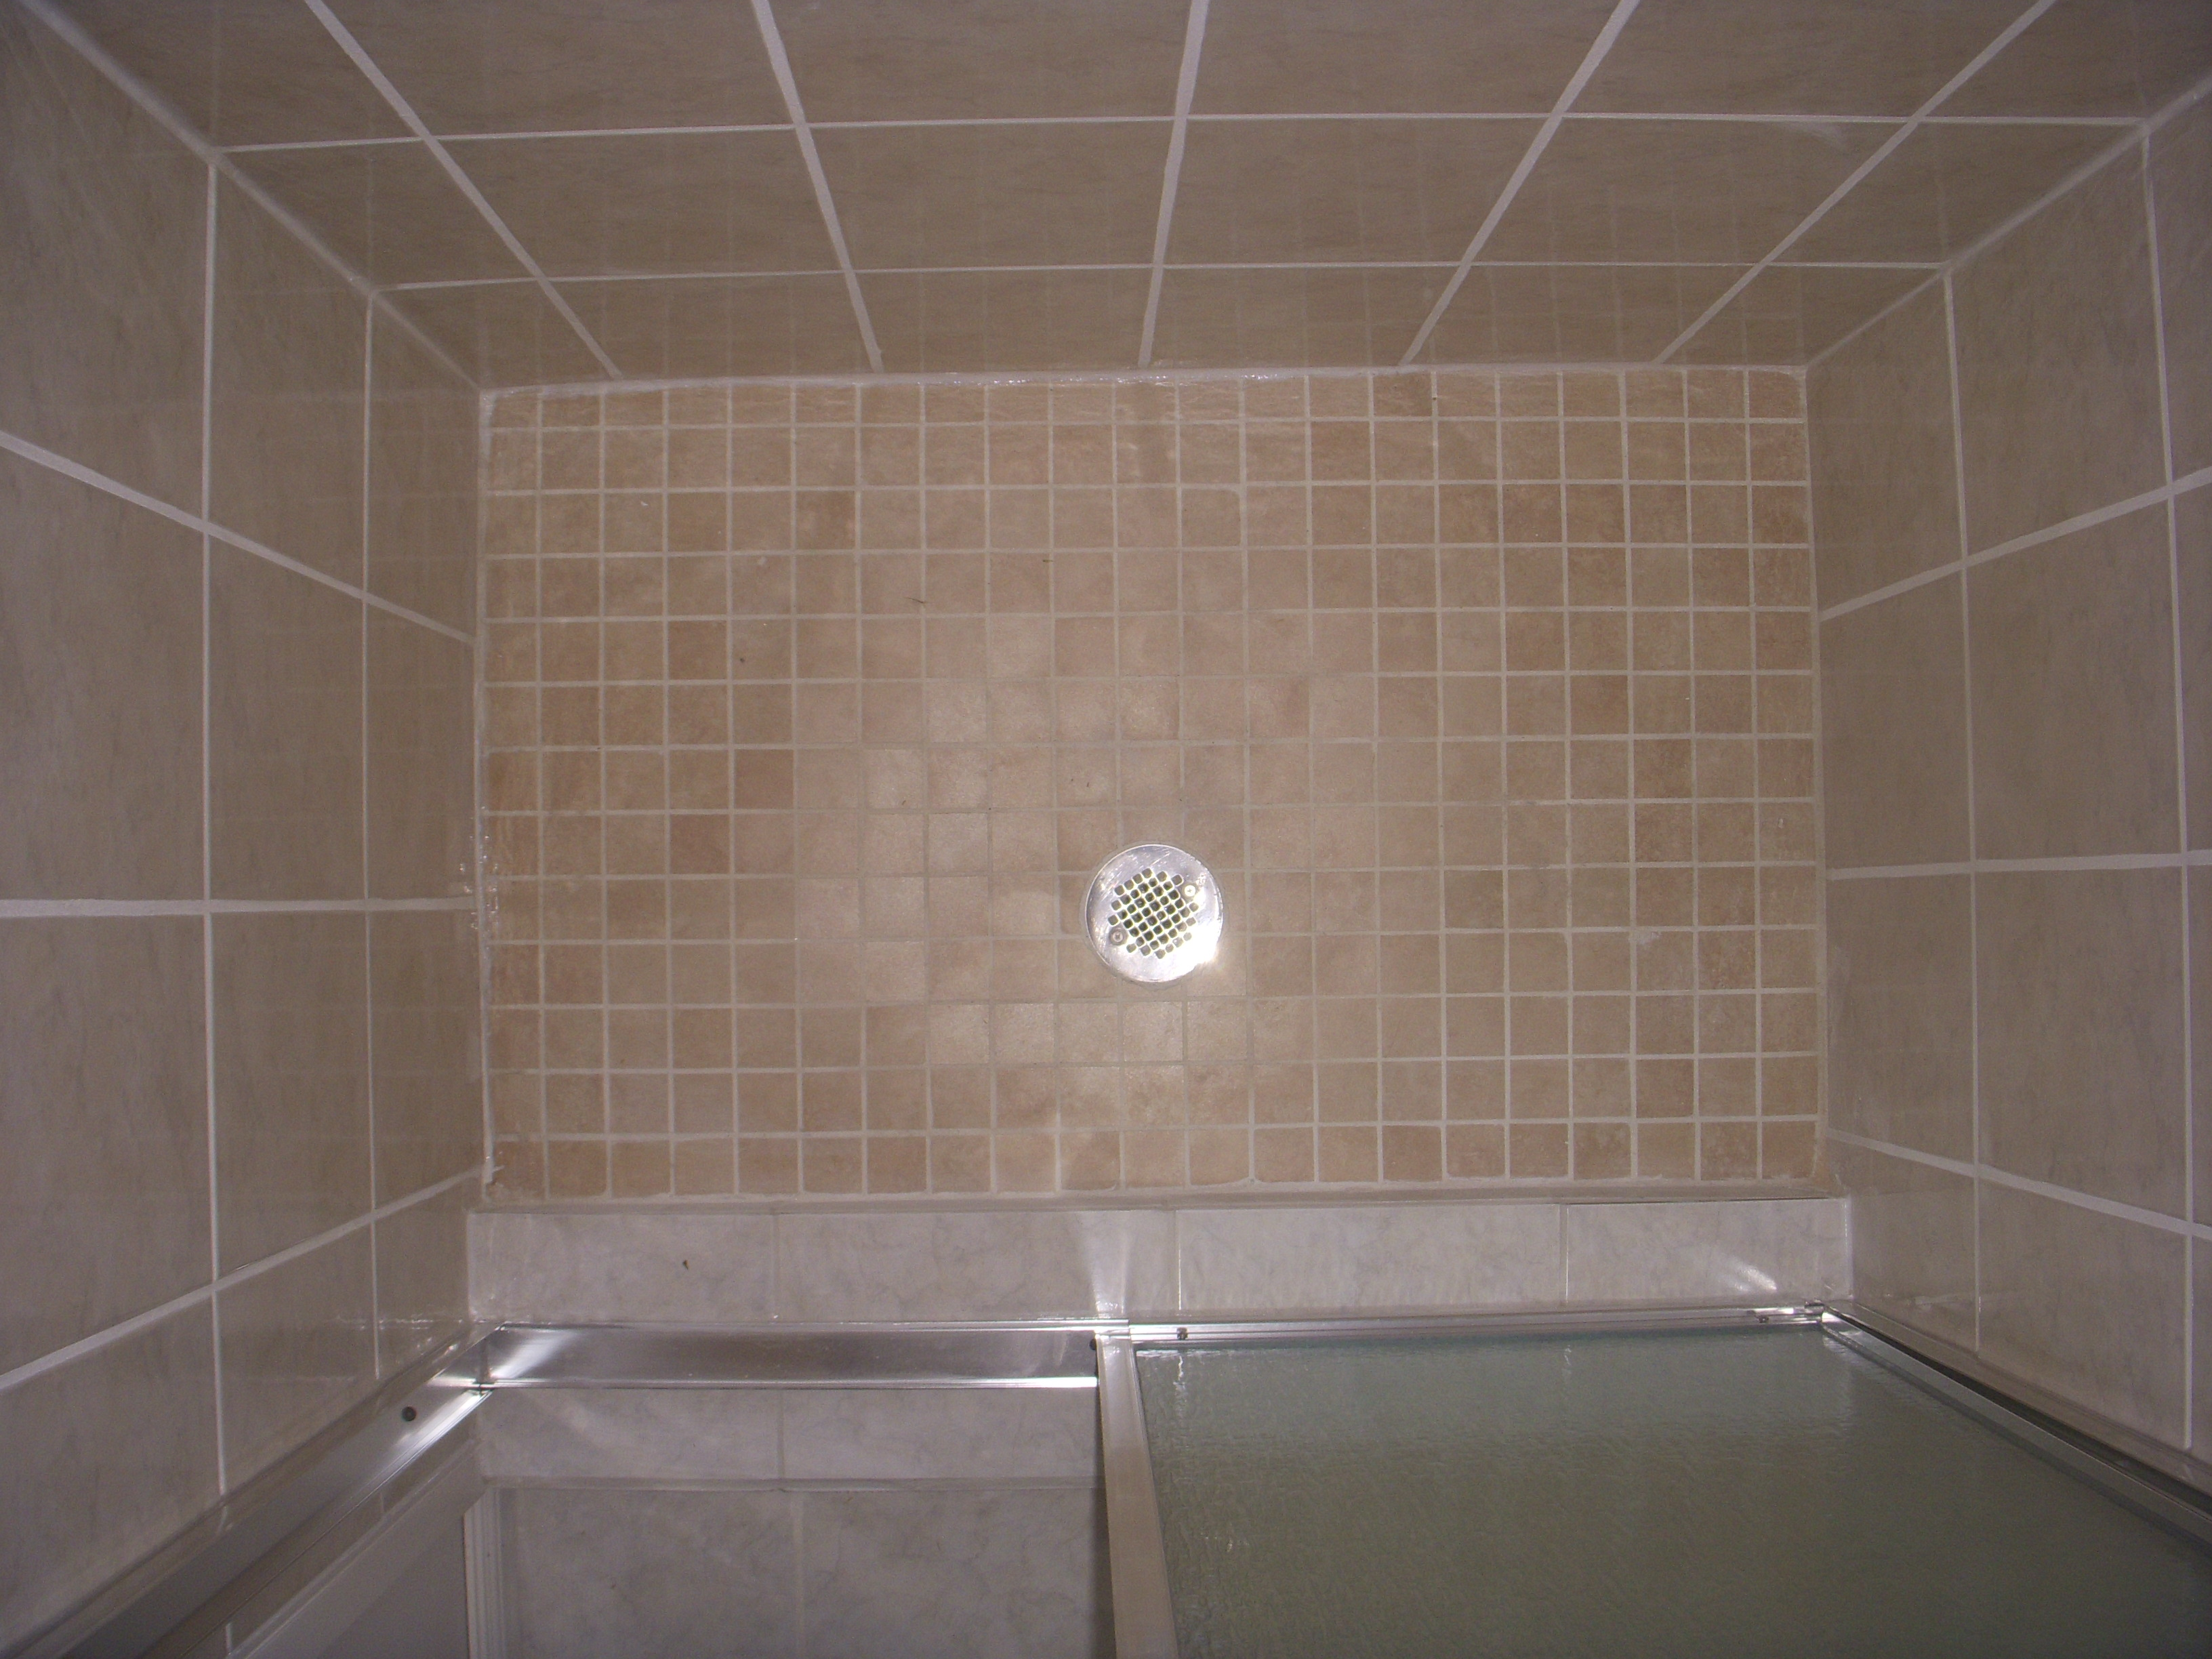 Mosaic Tile Floor Custom Shower Tray And New Drain Line